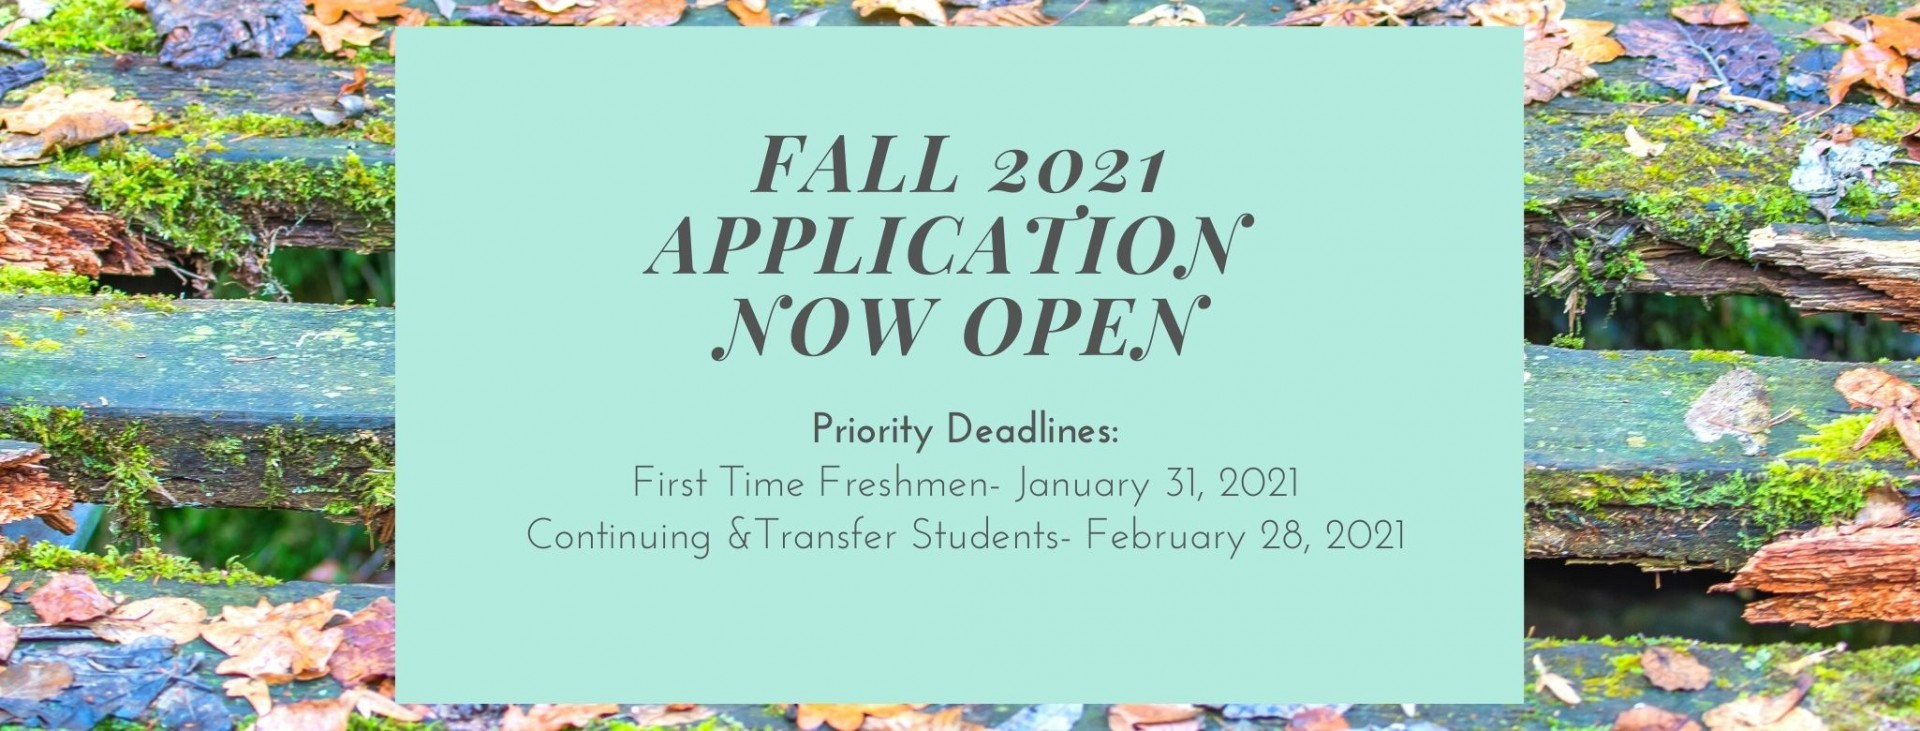 Fall 2021 application now open priority deadline is January 31 for freshmen, and February 28 for transfer and continuing student